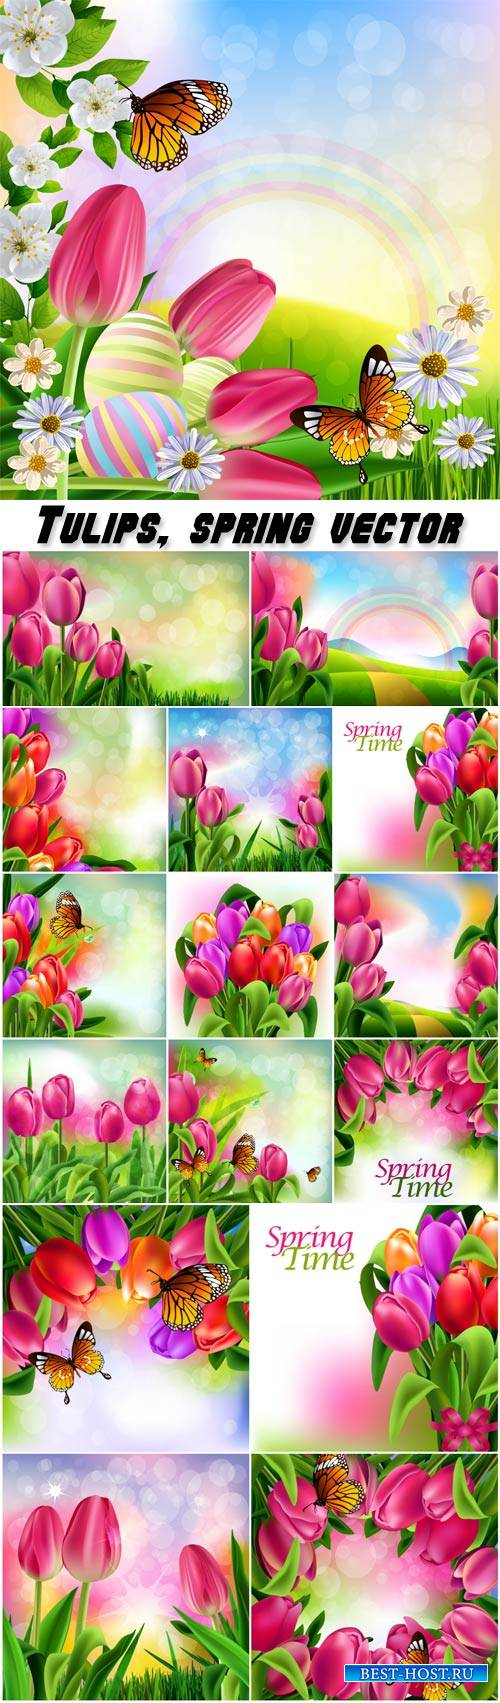 Tulips, spring vector backgrounds